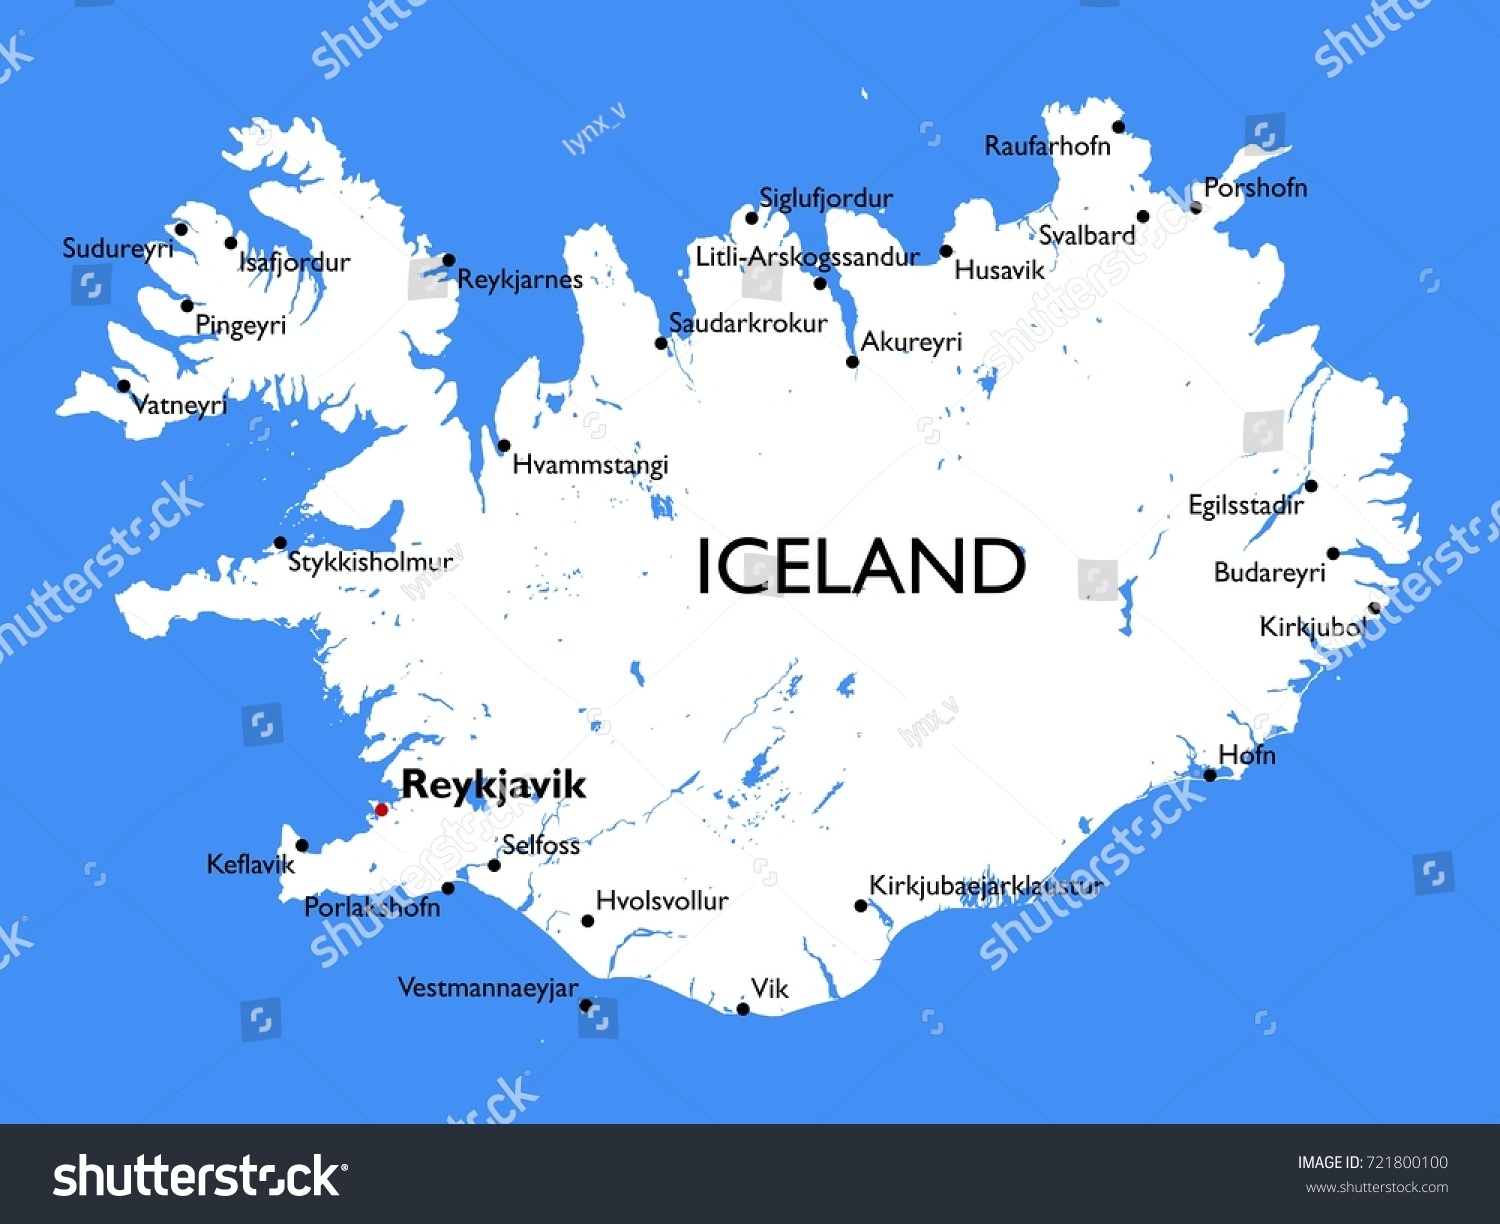 Iceland World Map Map Of Newark Airport - Iceland map world